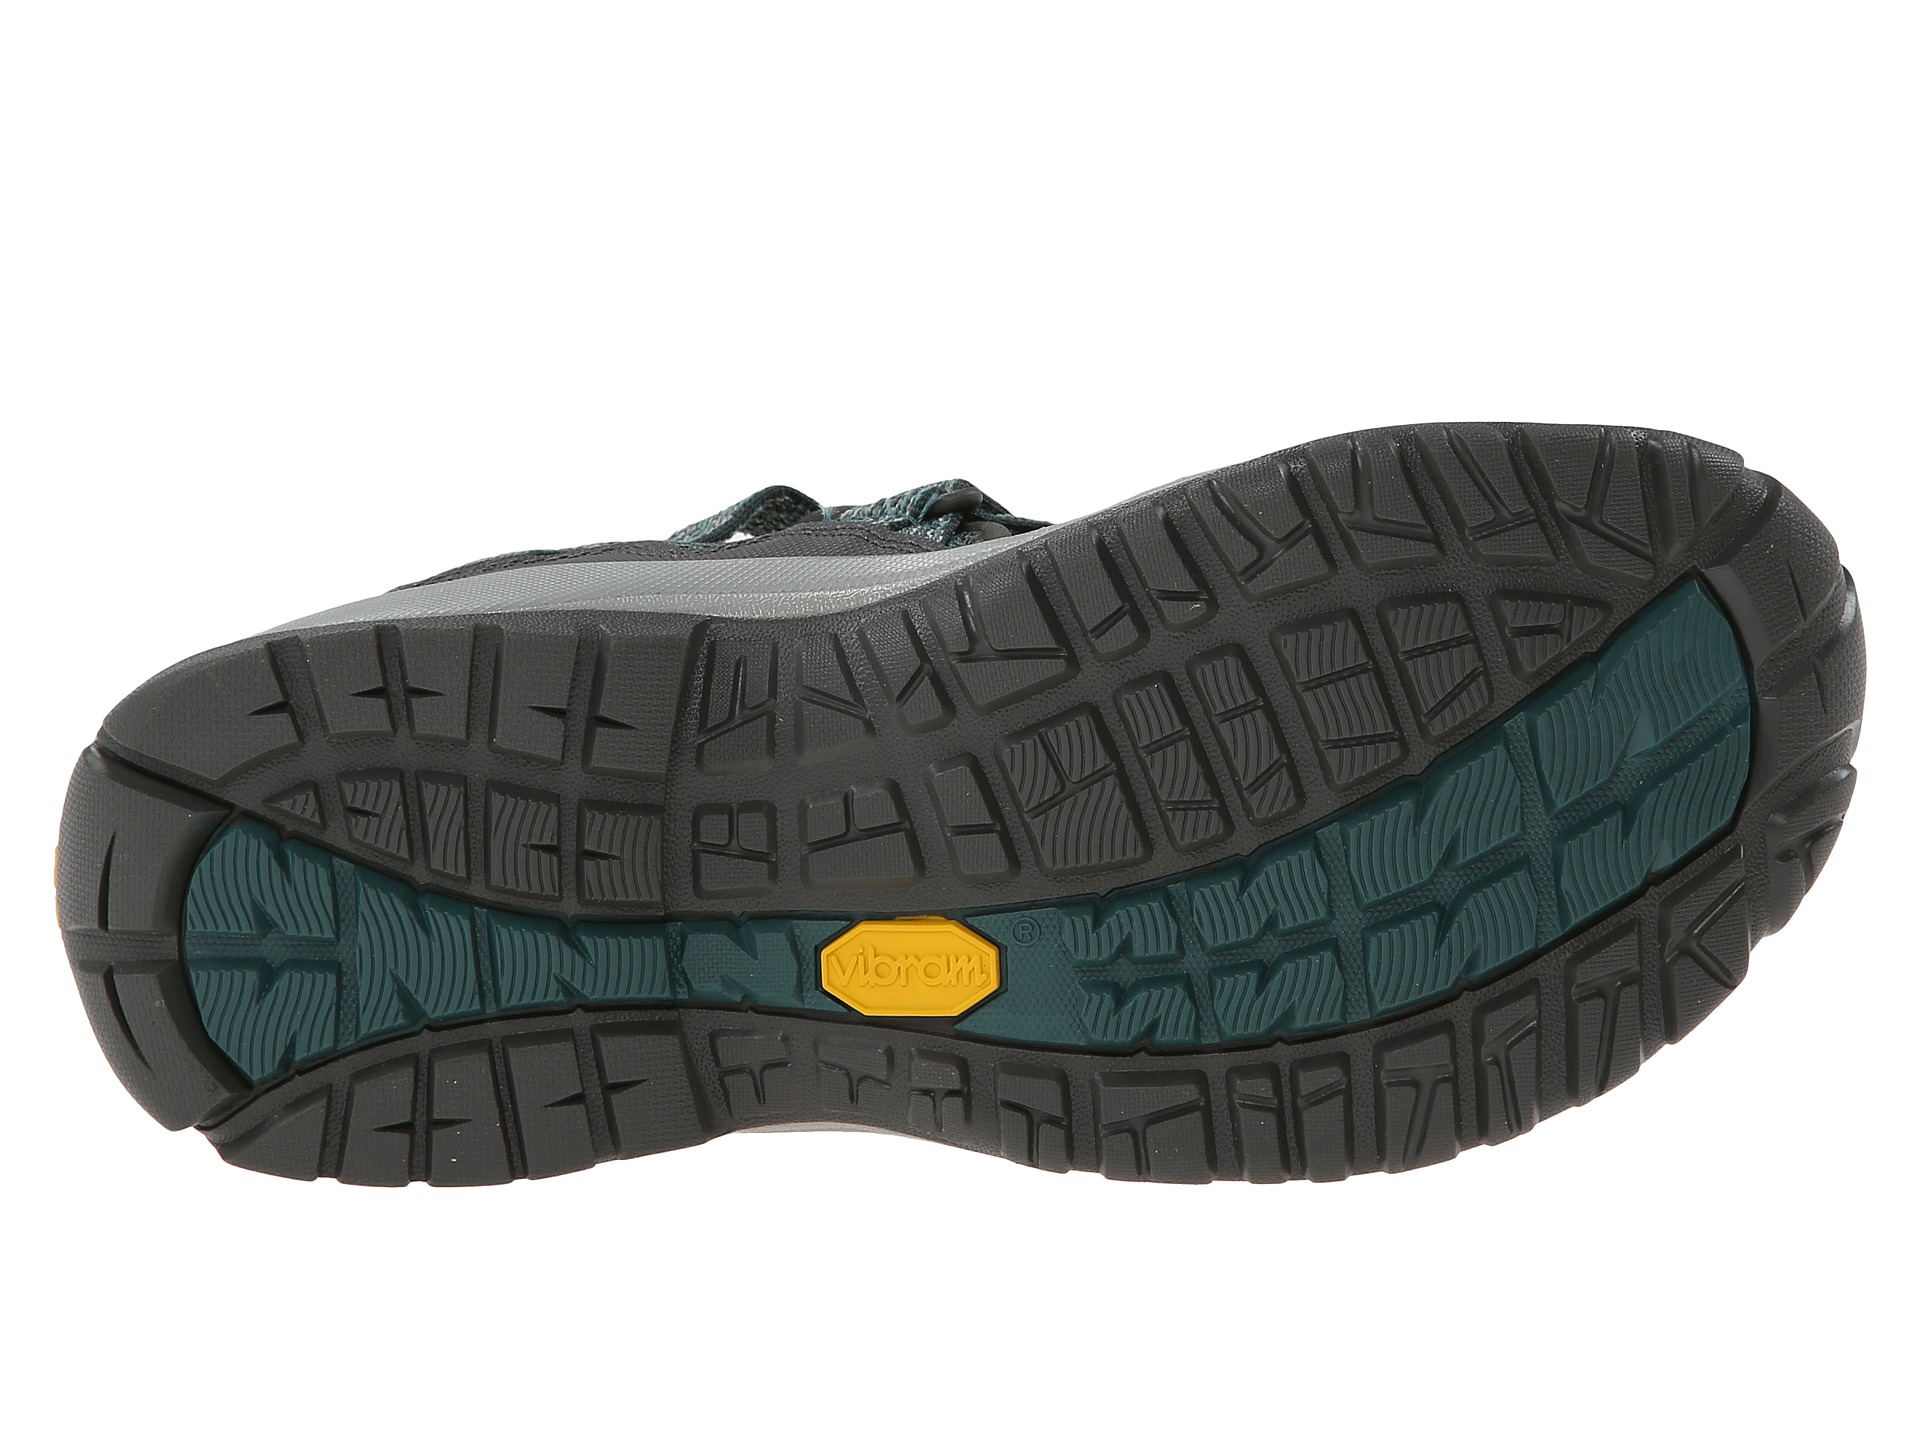 d041b8bdc2a9 Lyst - Chaco Outcross Pro Web in Gray